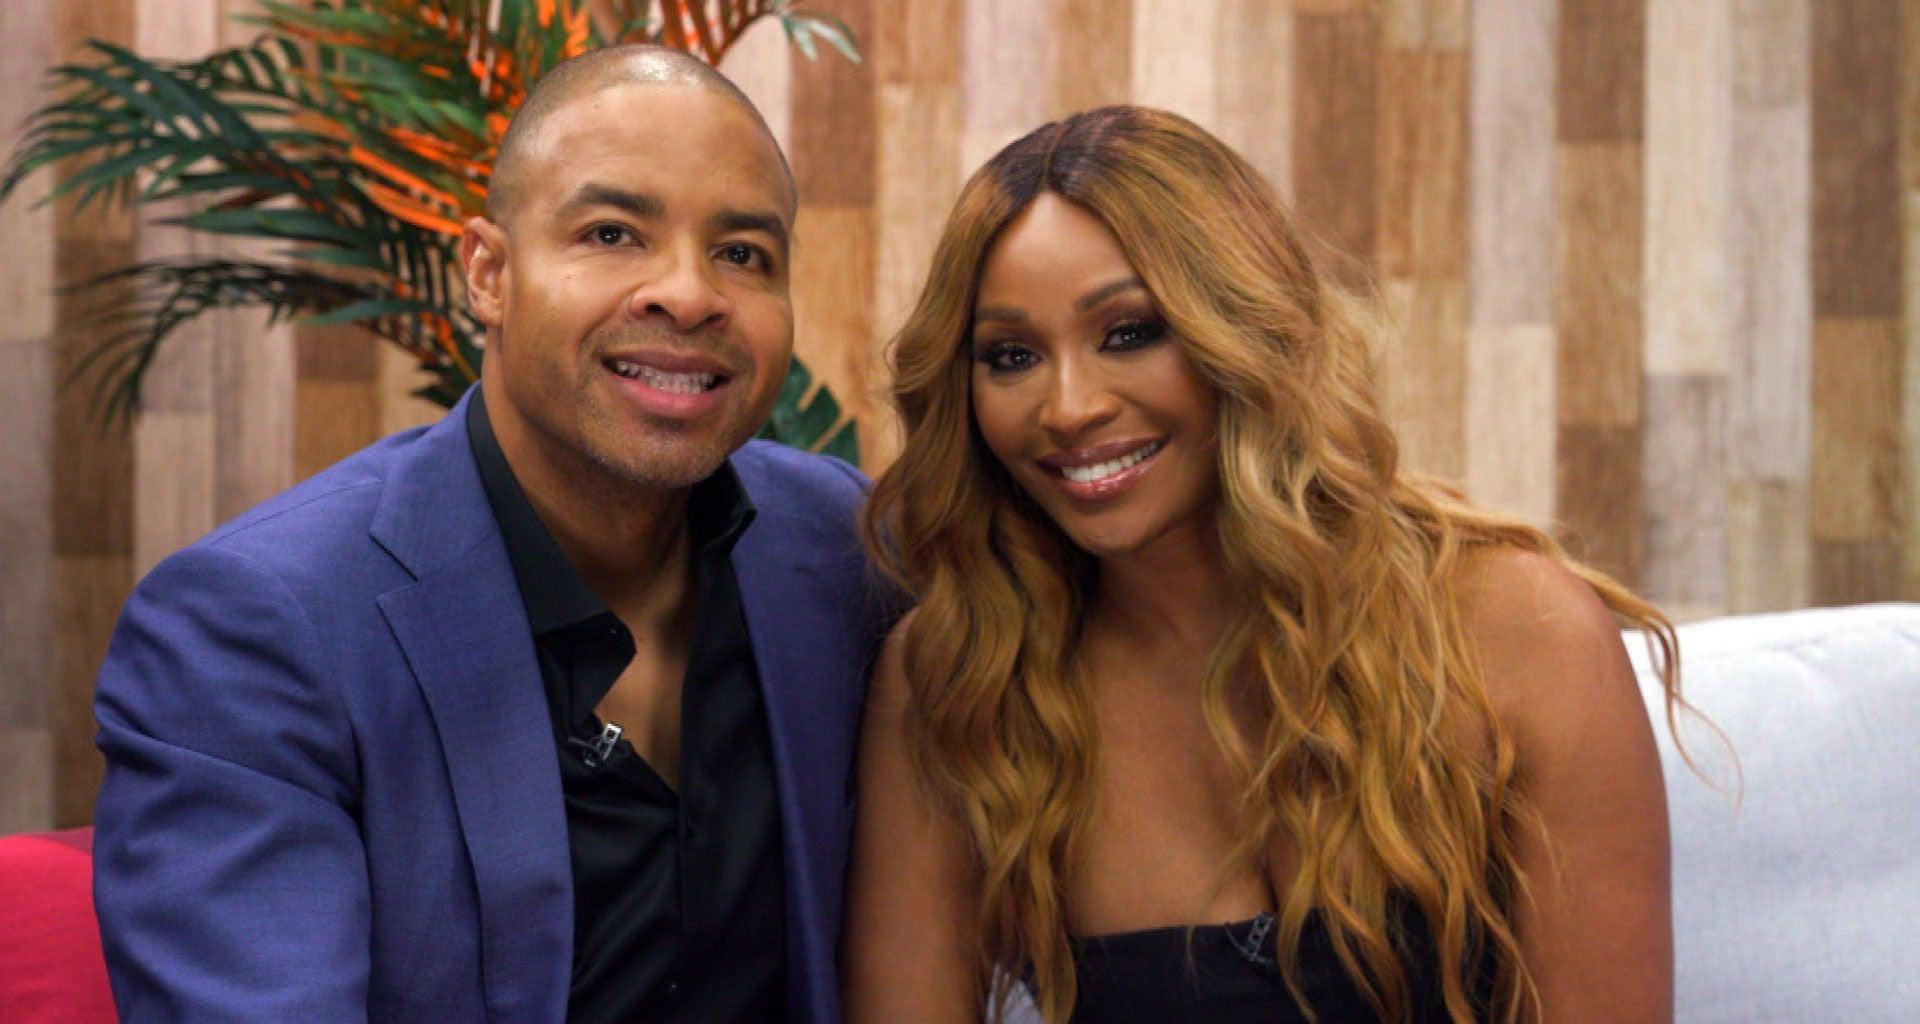 Cynthia Bailey Calls Mike Hill Her Happy Place - See Their Latest Photo Session Together